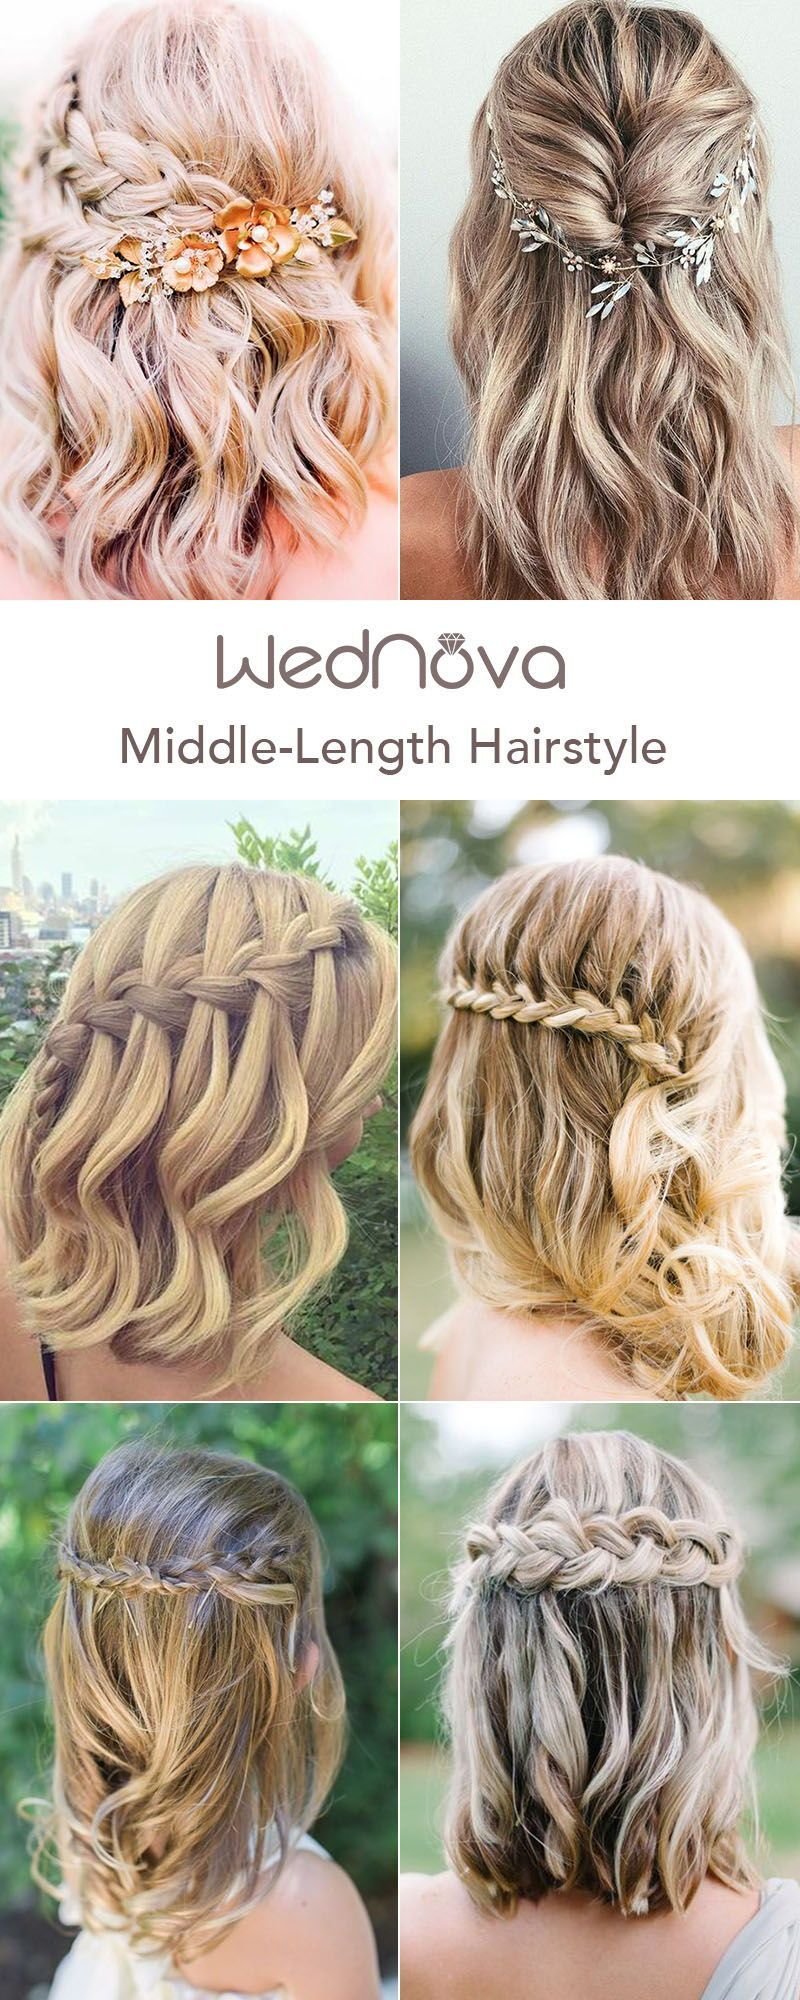 10 Easy Wedding Hairstyles Best Guide For Your Bridesmaids In 10